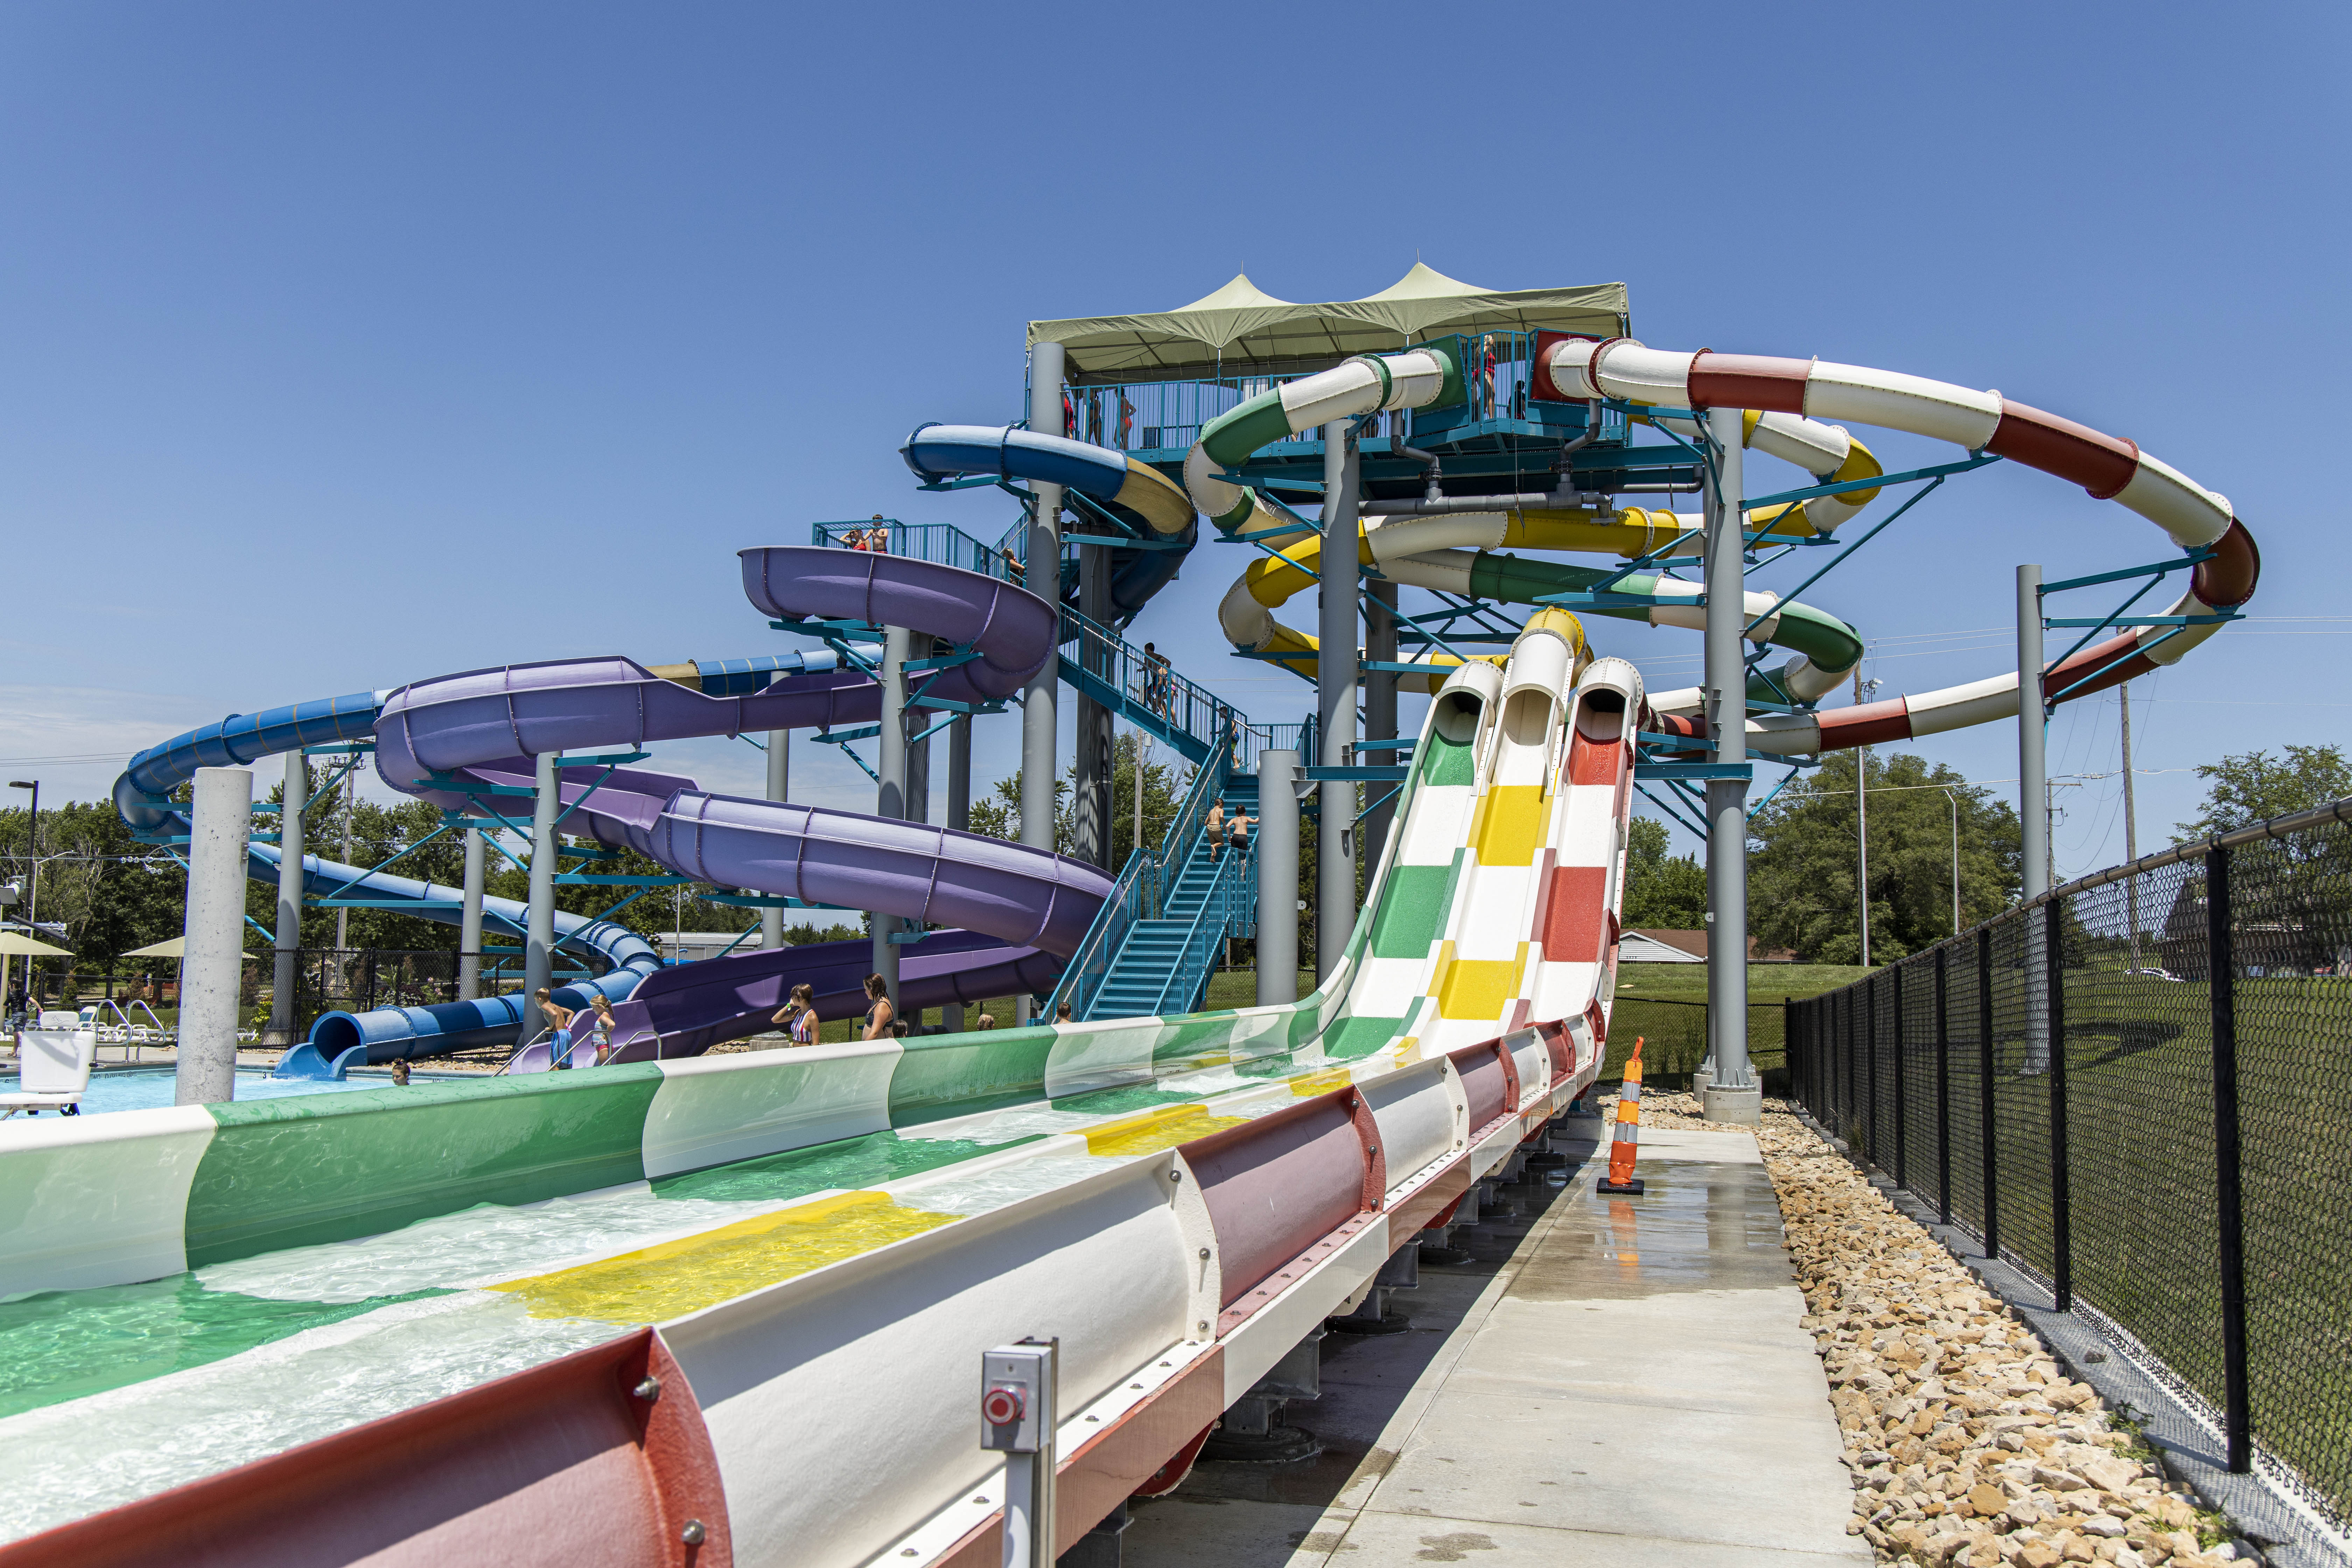 Water slide towers at Midwest Health Aquatic Center